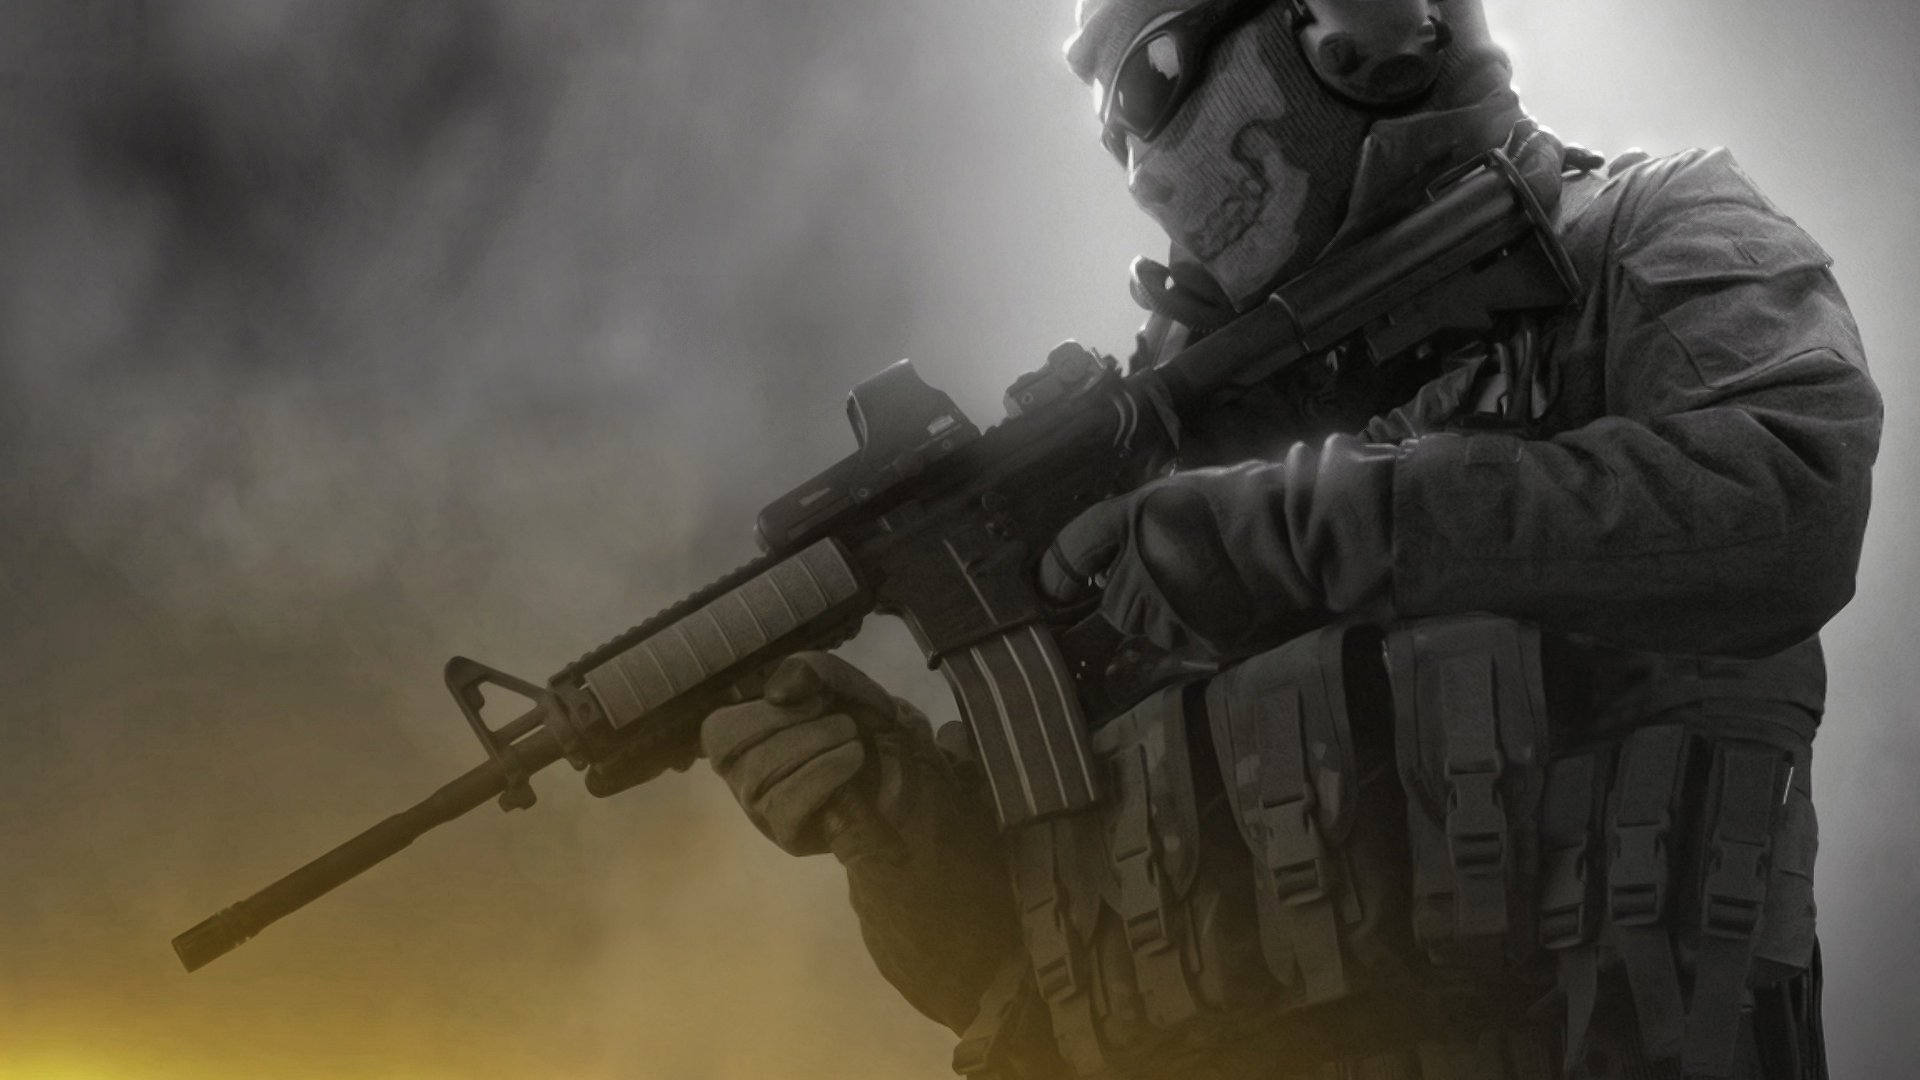 58 Call Of Duty Modern Warfare 2 Hd обои фоны Wallpaper